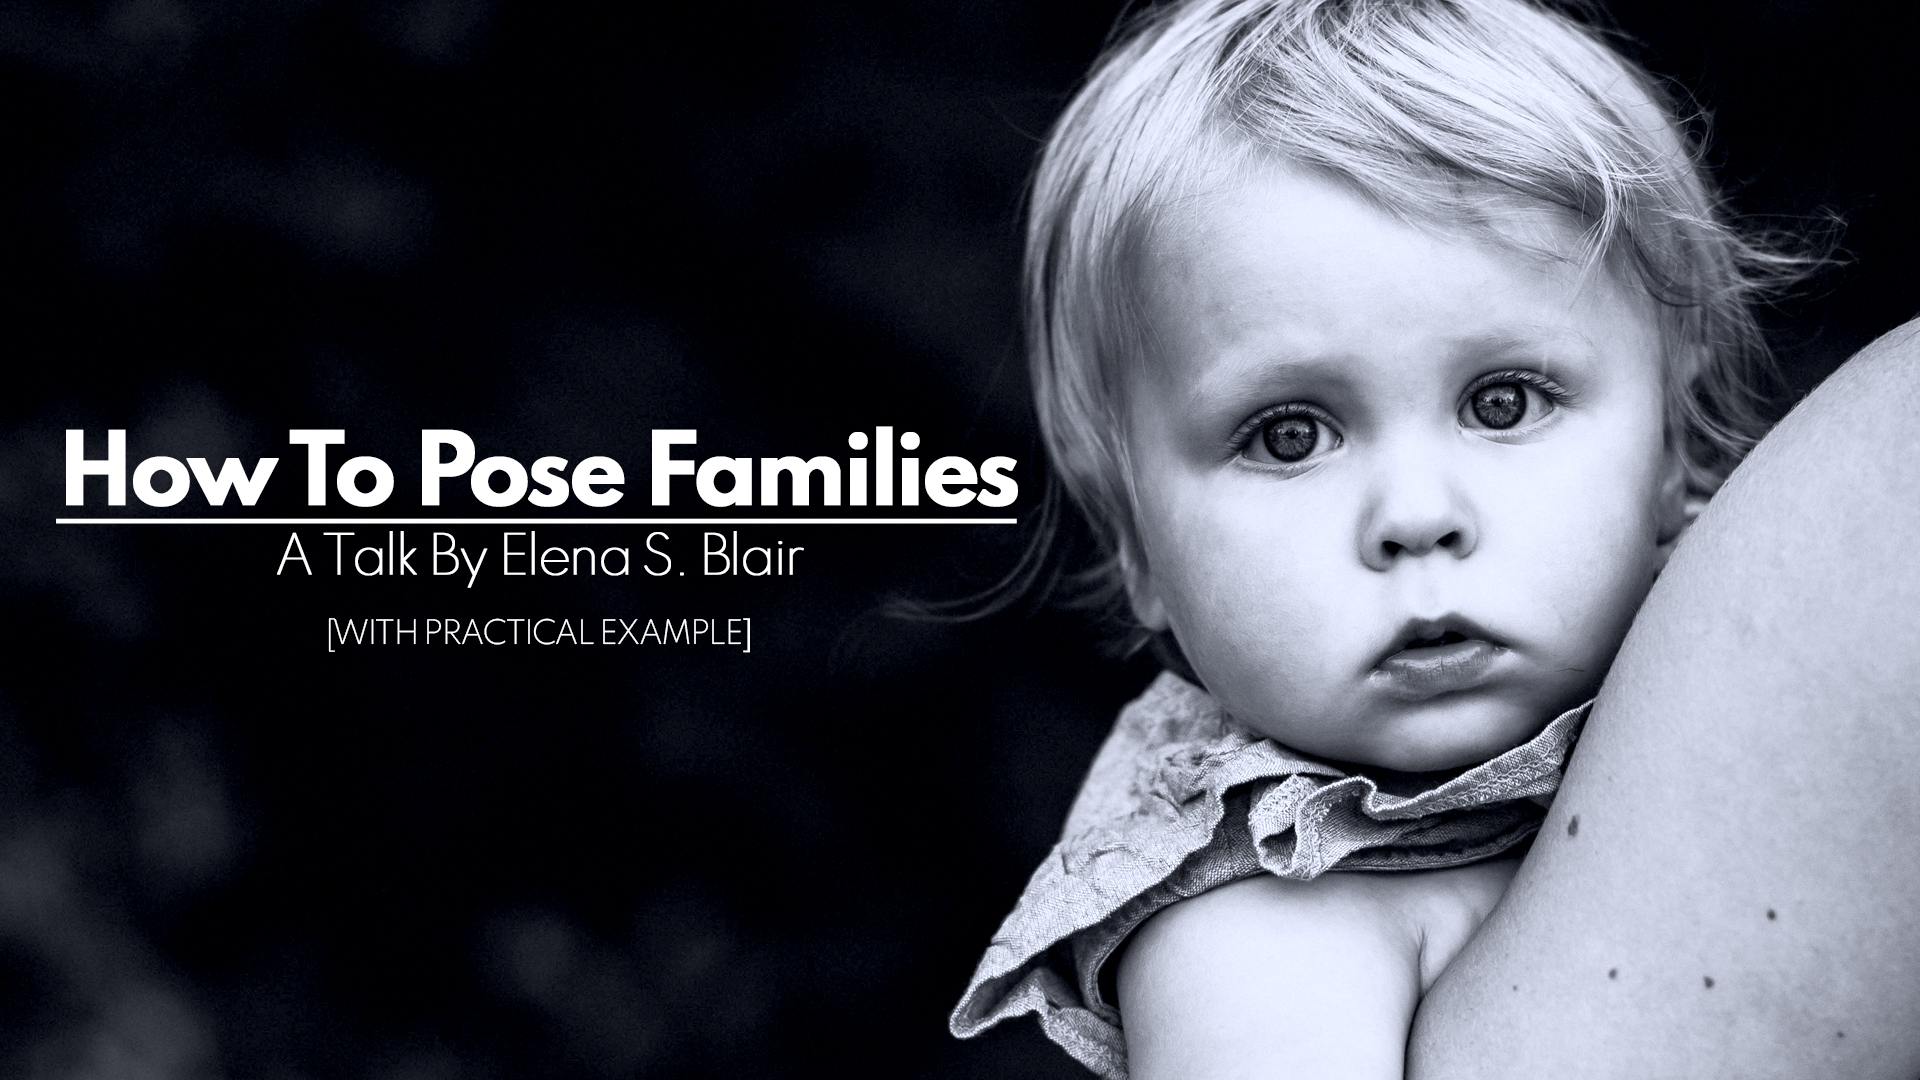 How To Pose Families During A Photoshoot With Practical Example   A Talk Follow By Q&A By Elena S. Blair